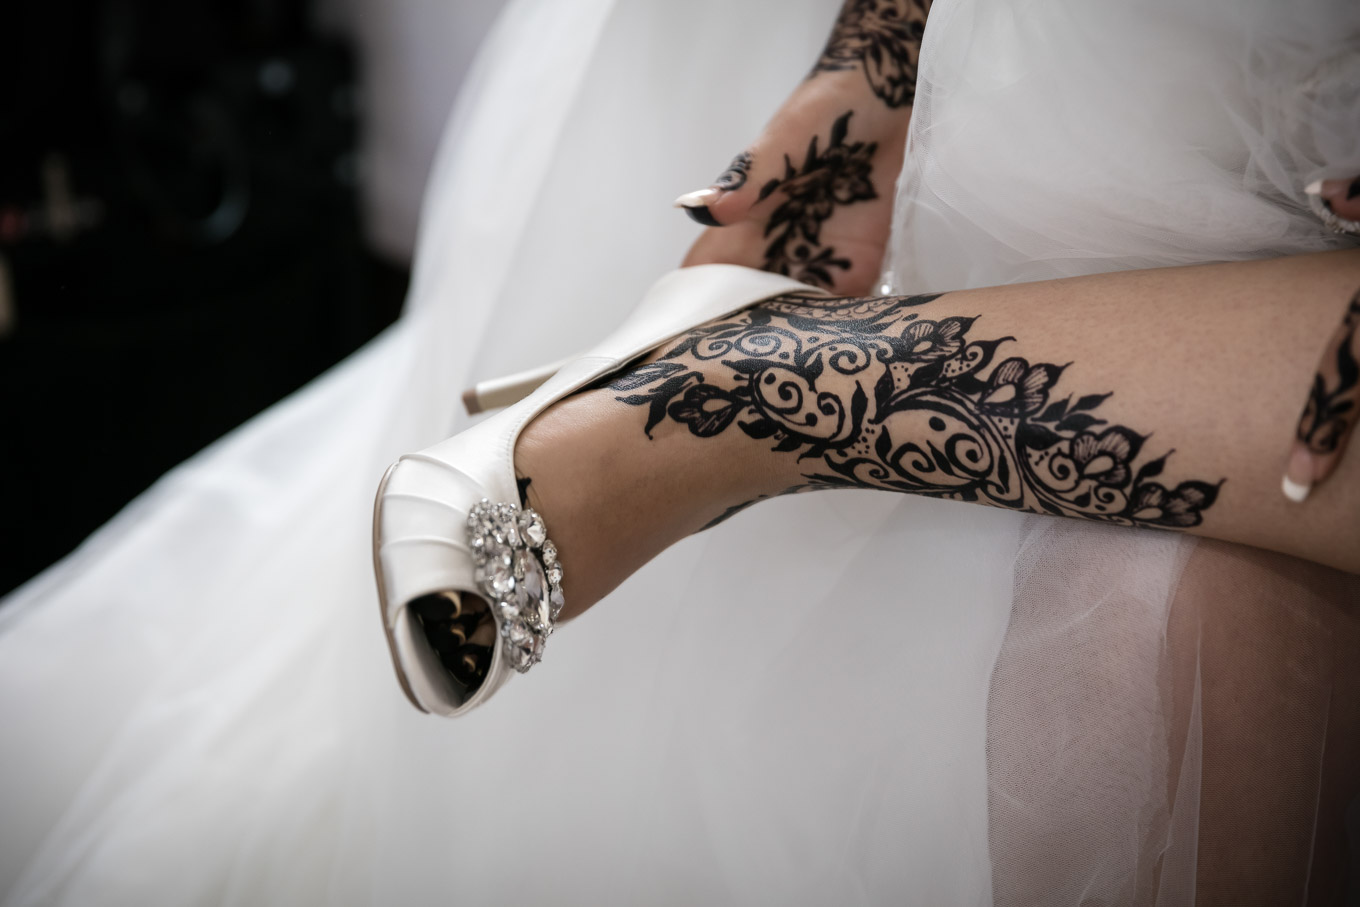 Http://EvendimImages.co.uk Http://Perfect-wedding.photography